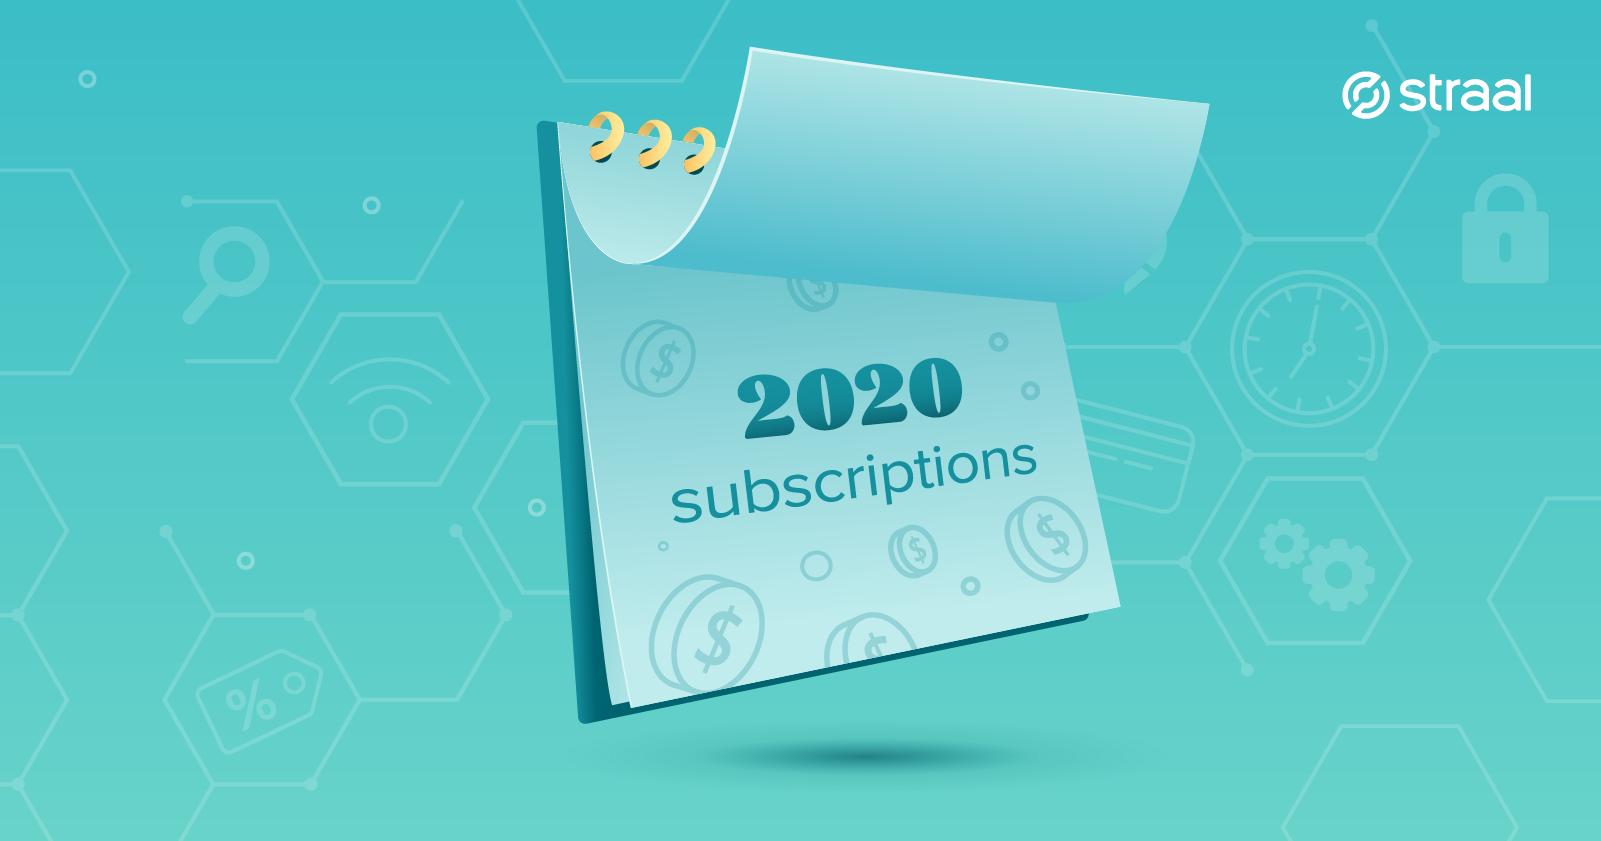 straal subscription trends 2020